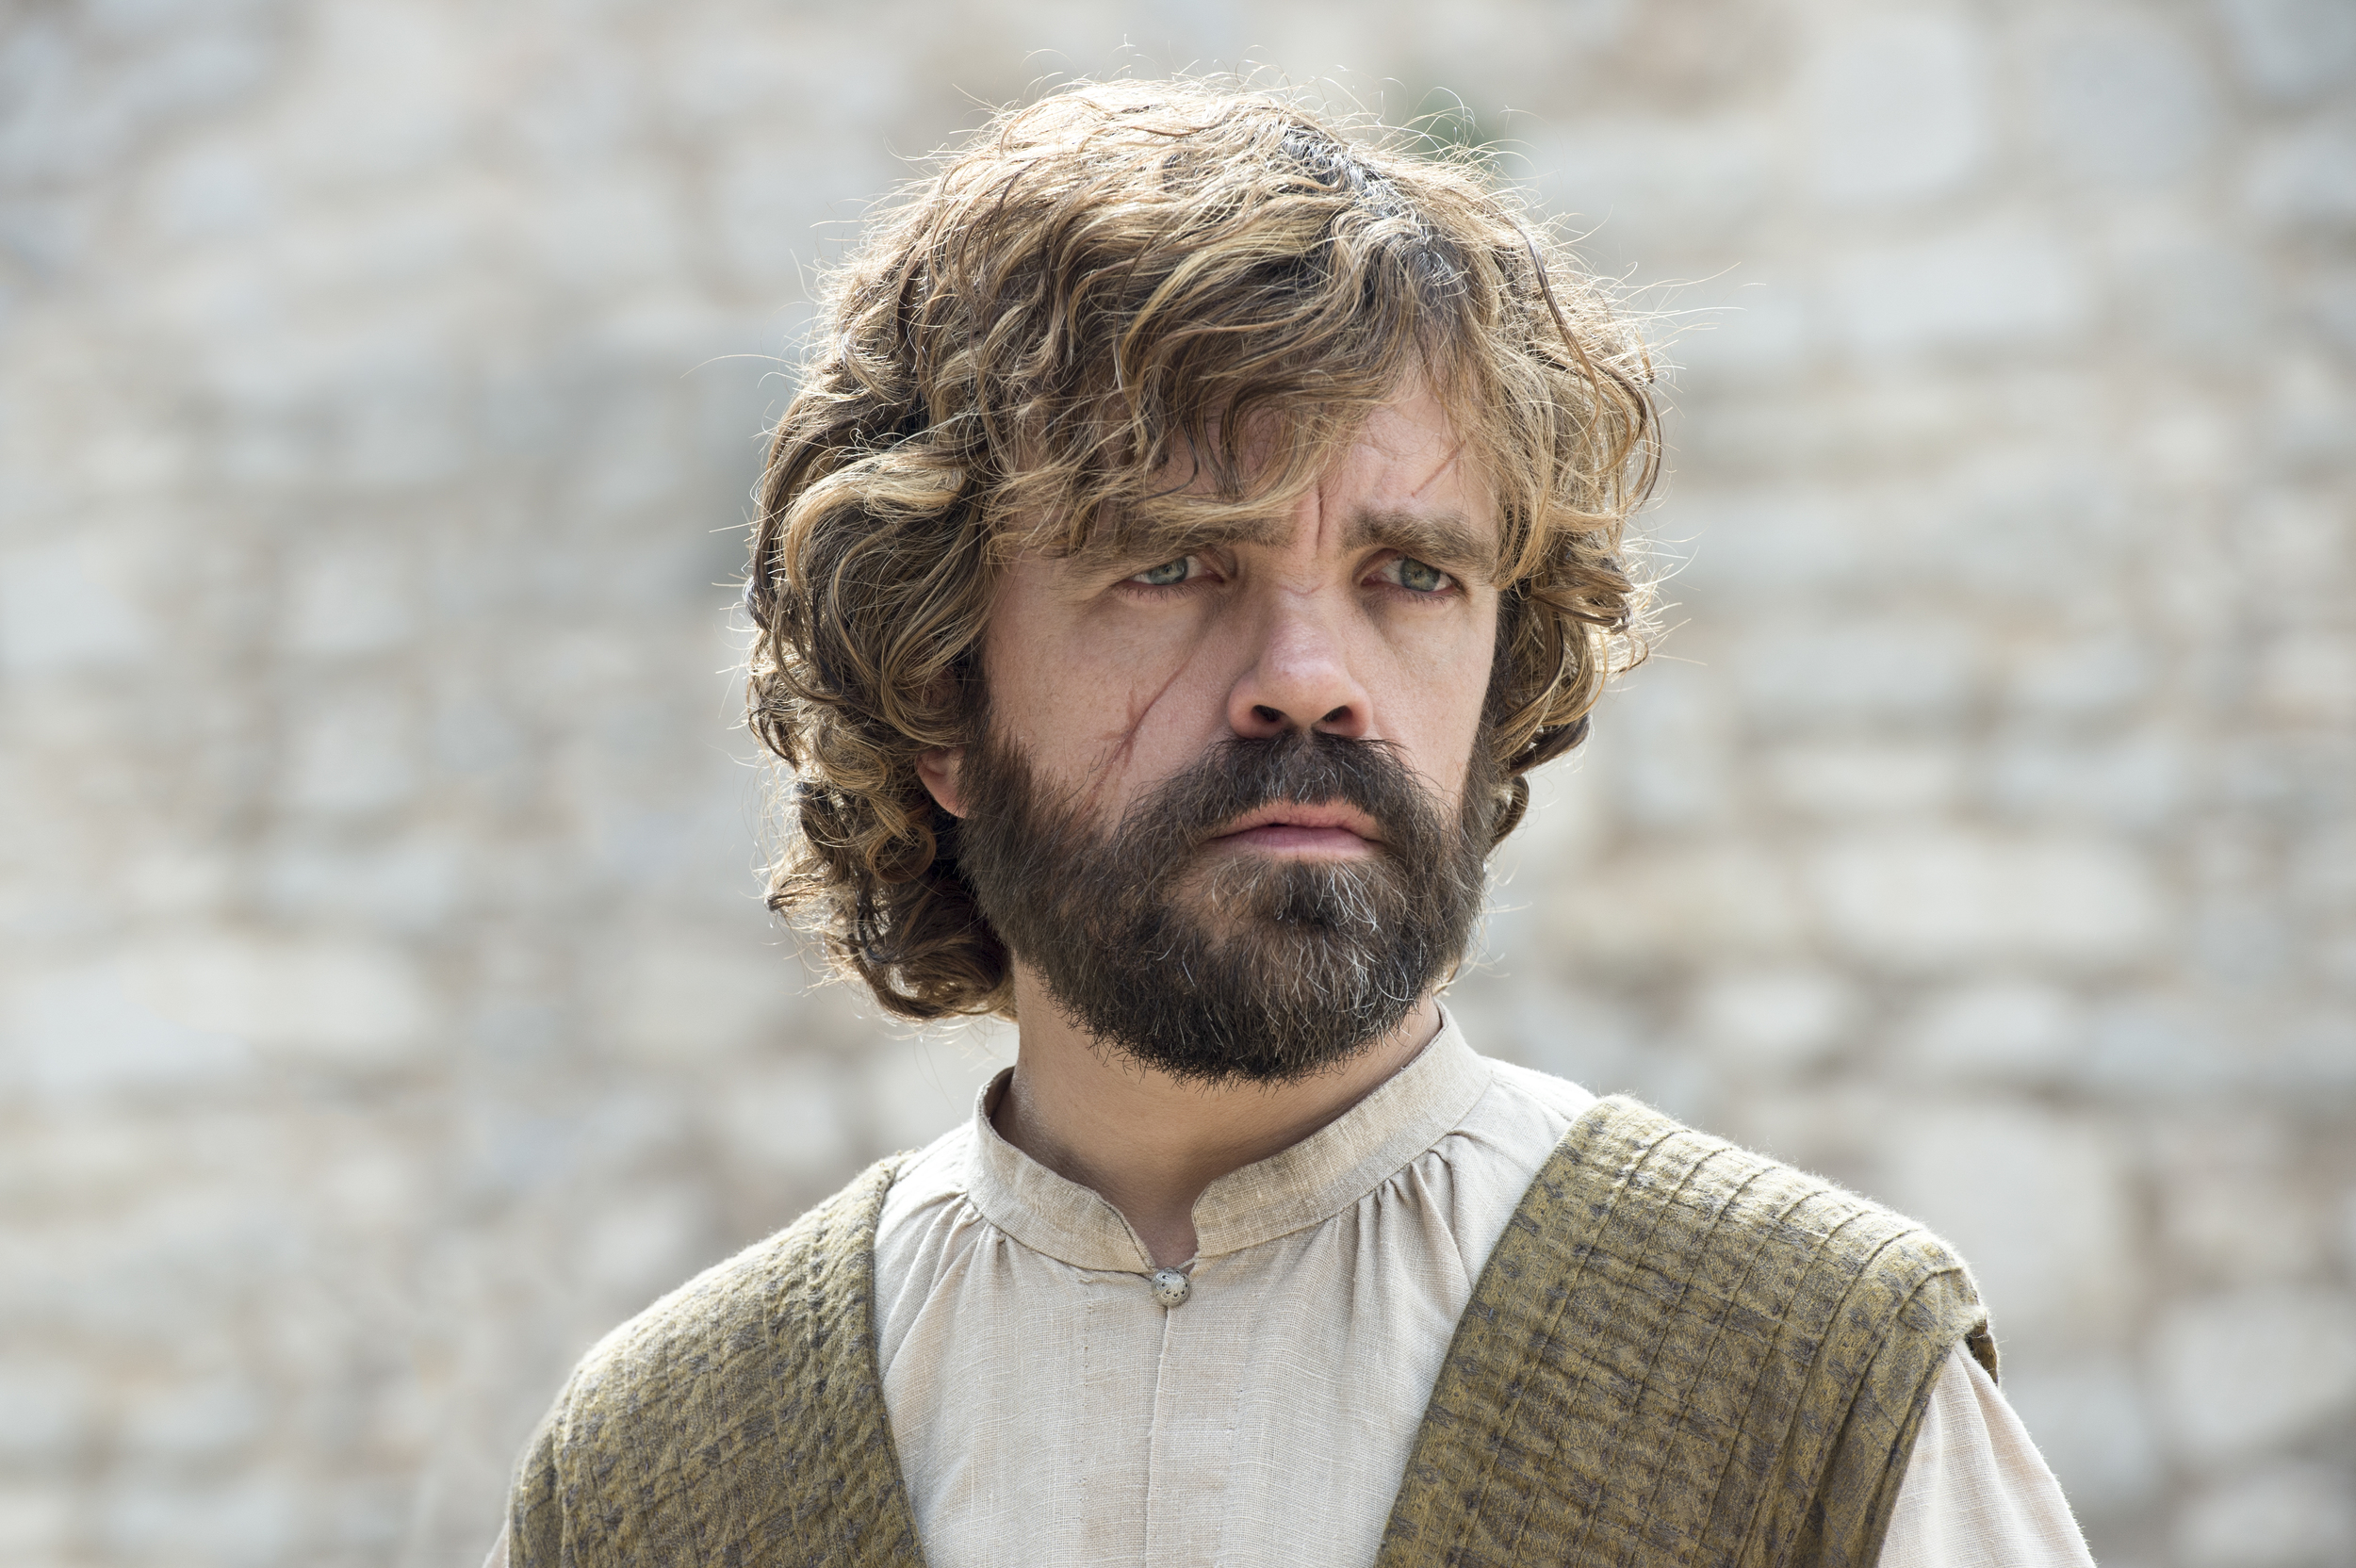 game of thrones season 6 photos, tyrion lannister, peter dinklage